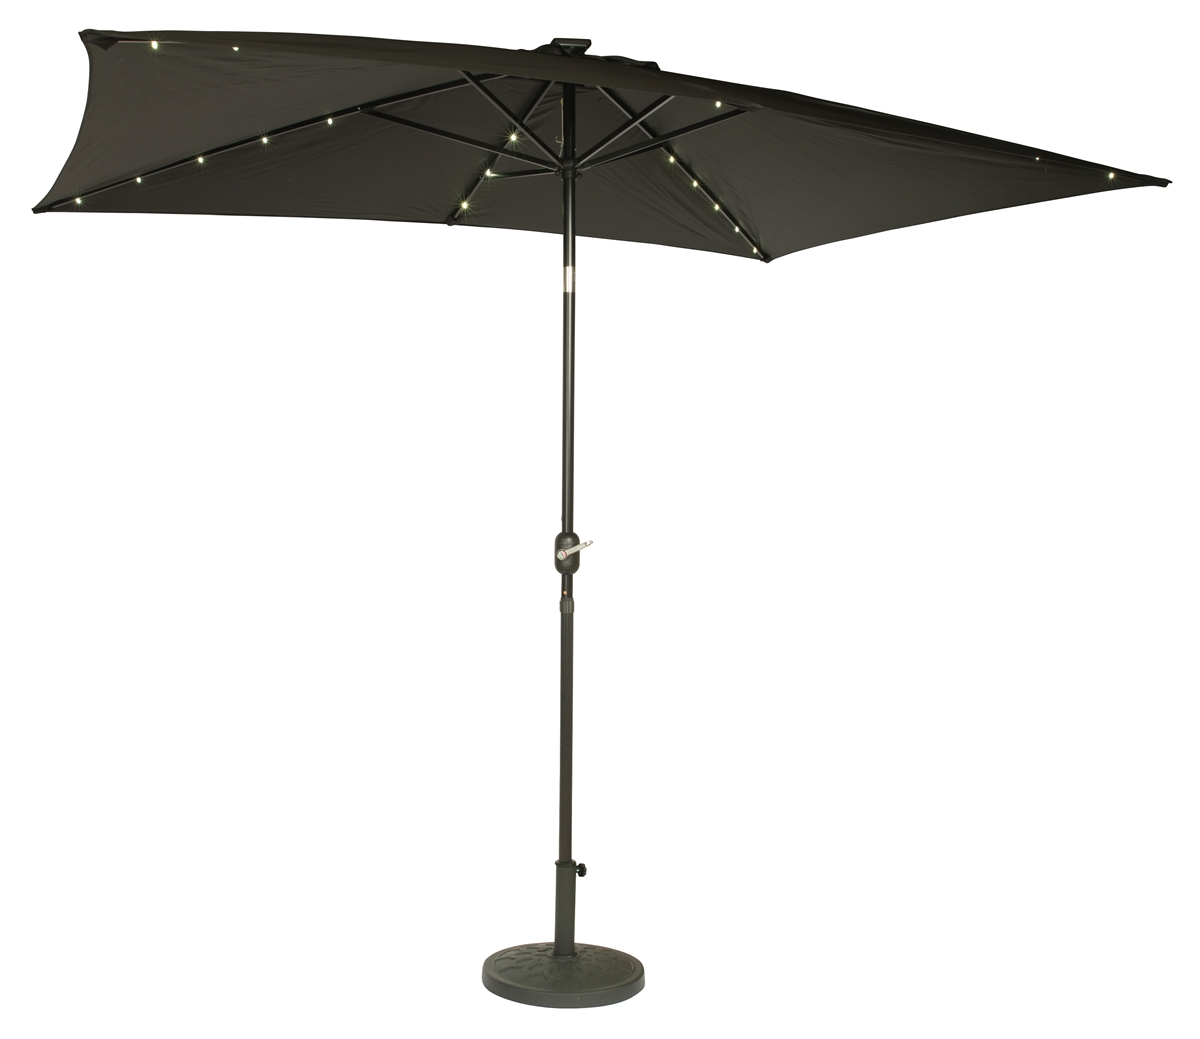 Captivating 10u0027 X 6.5u0027 Rectangular Solar Powered LED Lighted Patio Umbrella By  Trademark Innovations (Black)